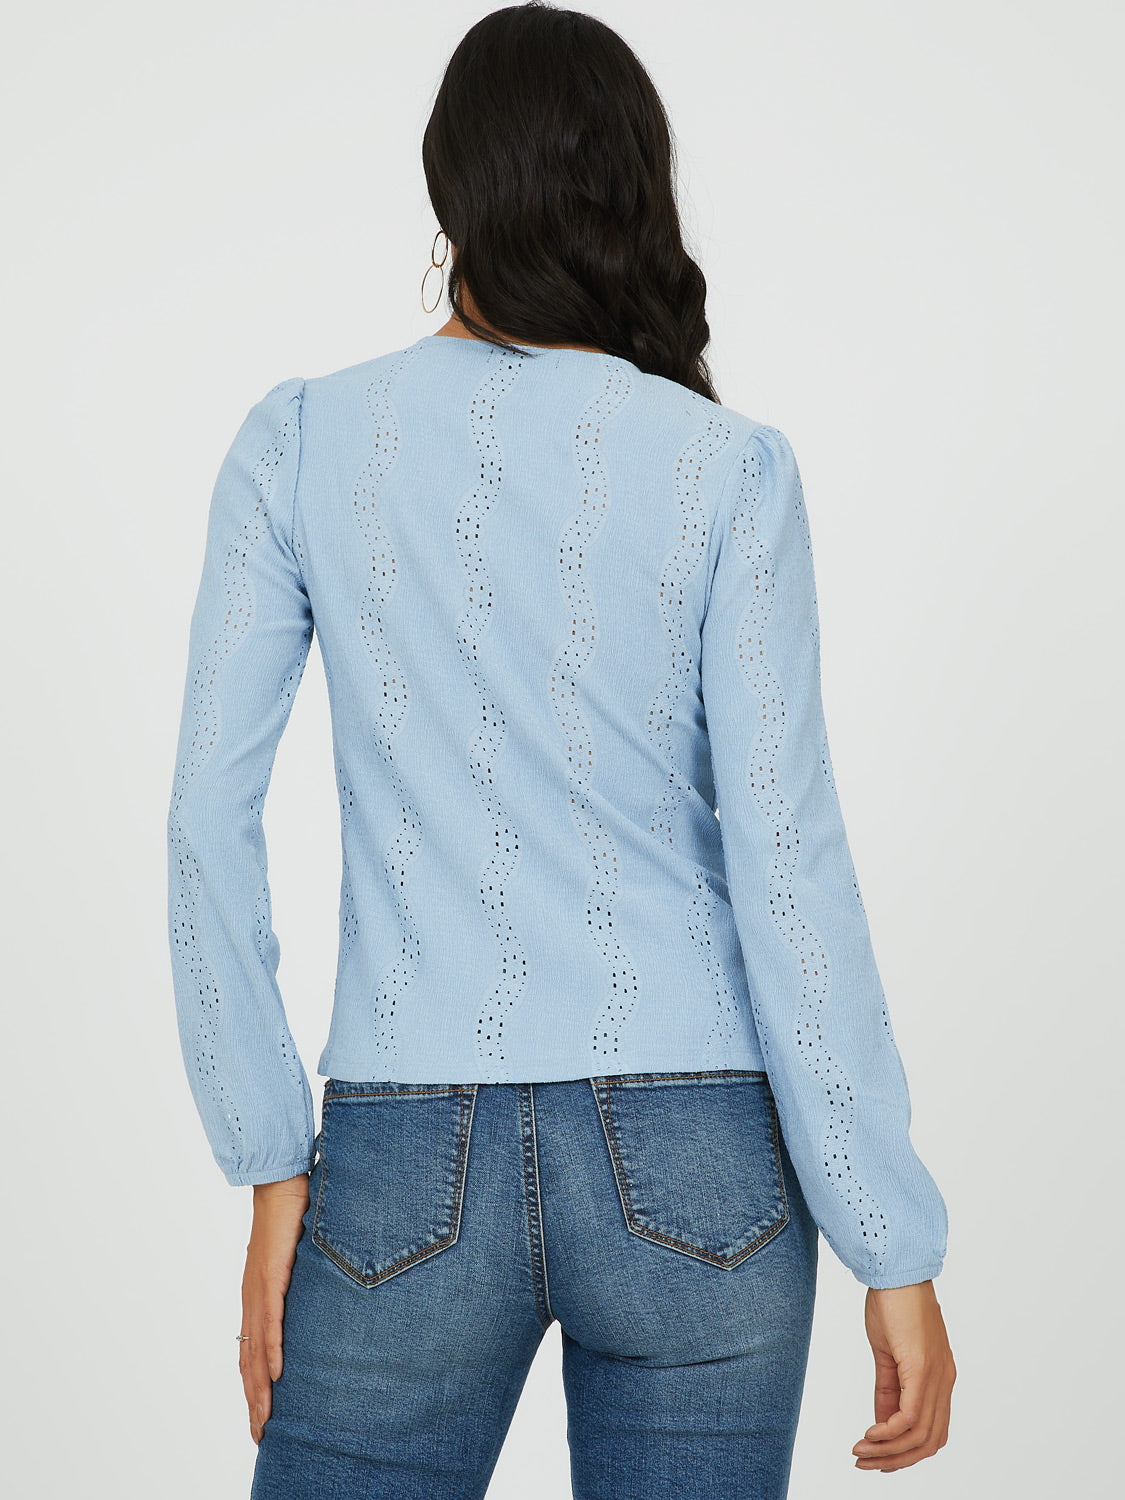 Puff Sleeve Jacquard & Eyelet Top